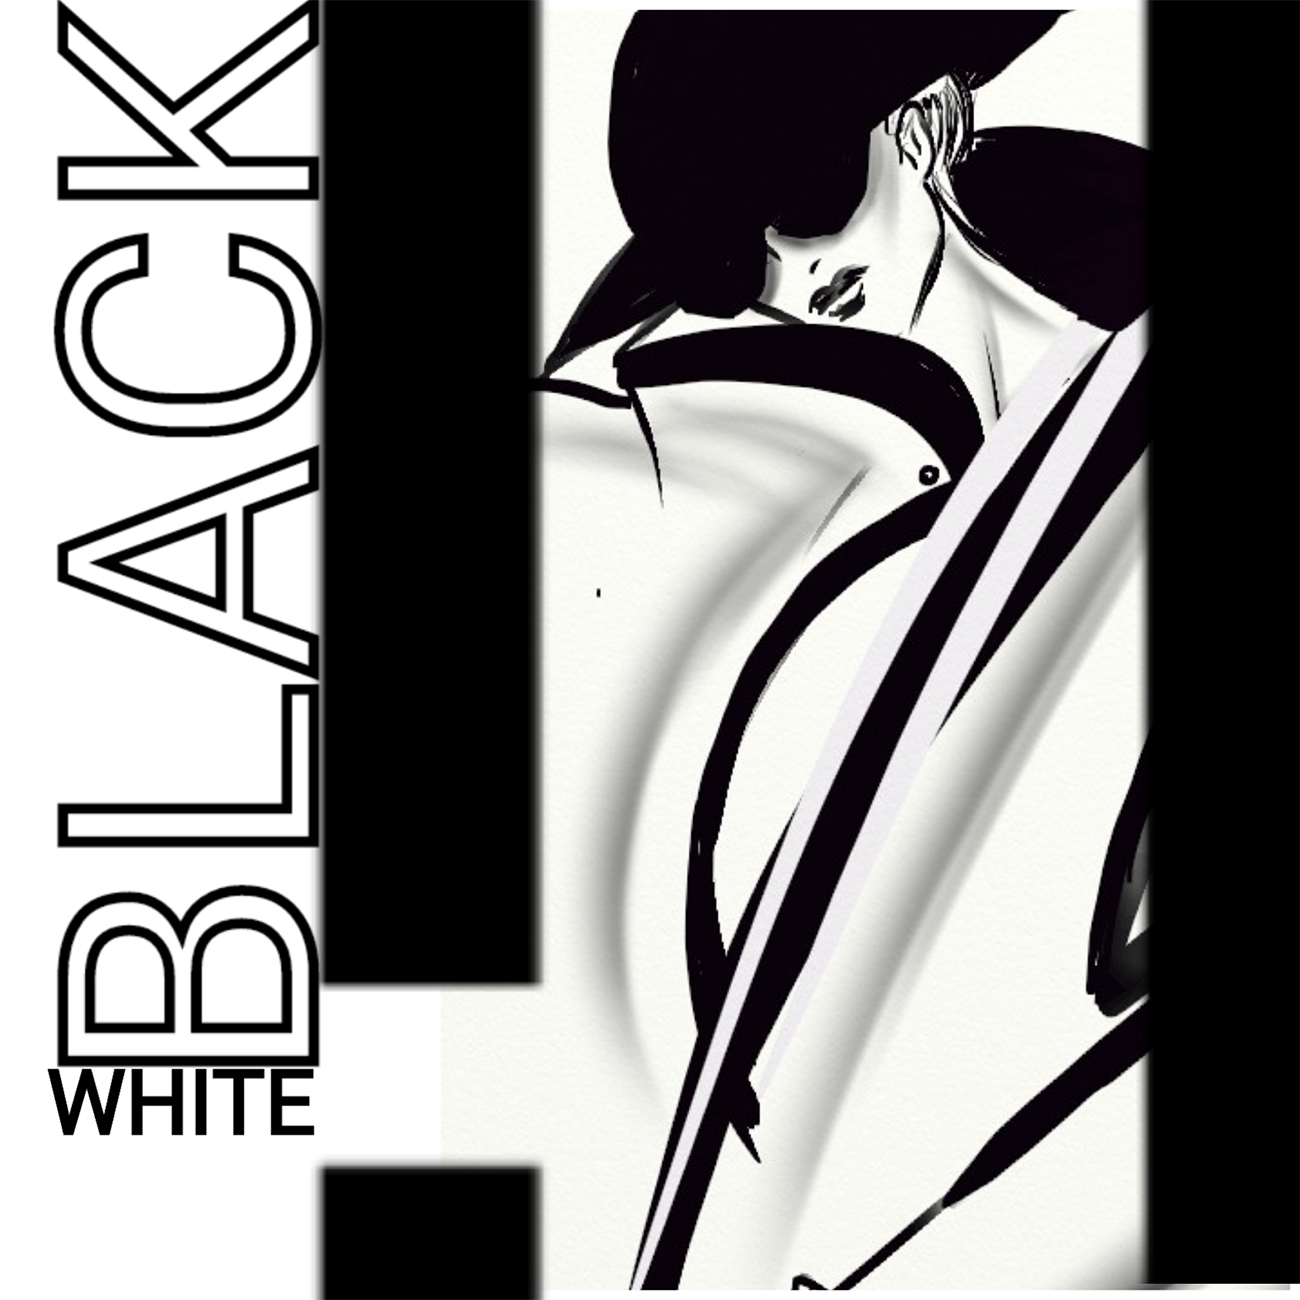 Artwork White Black - Razack